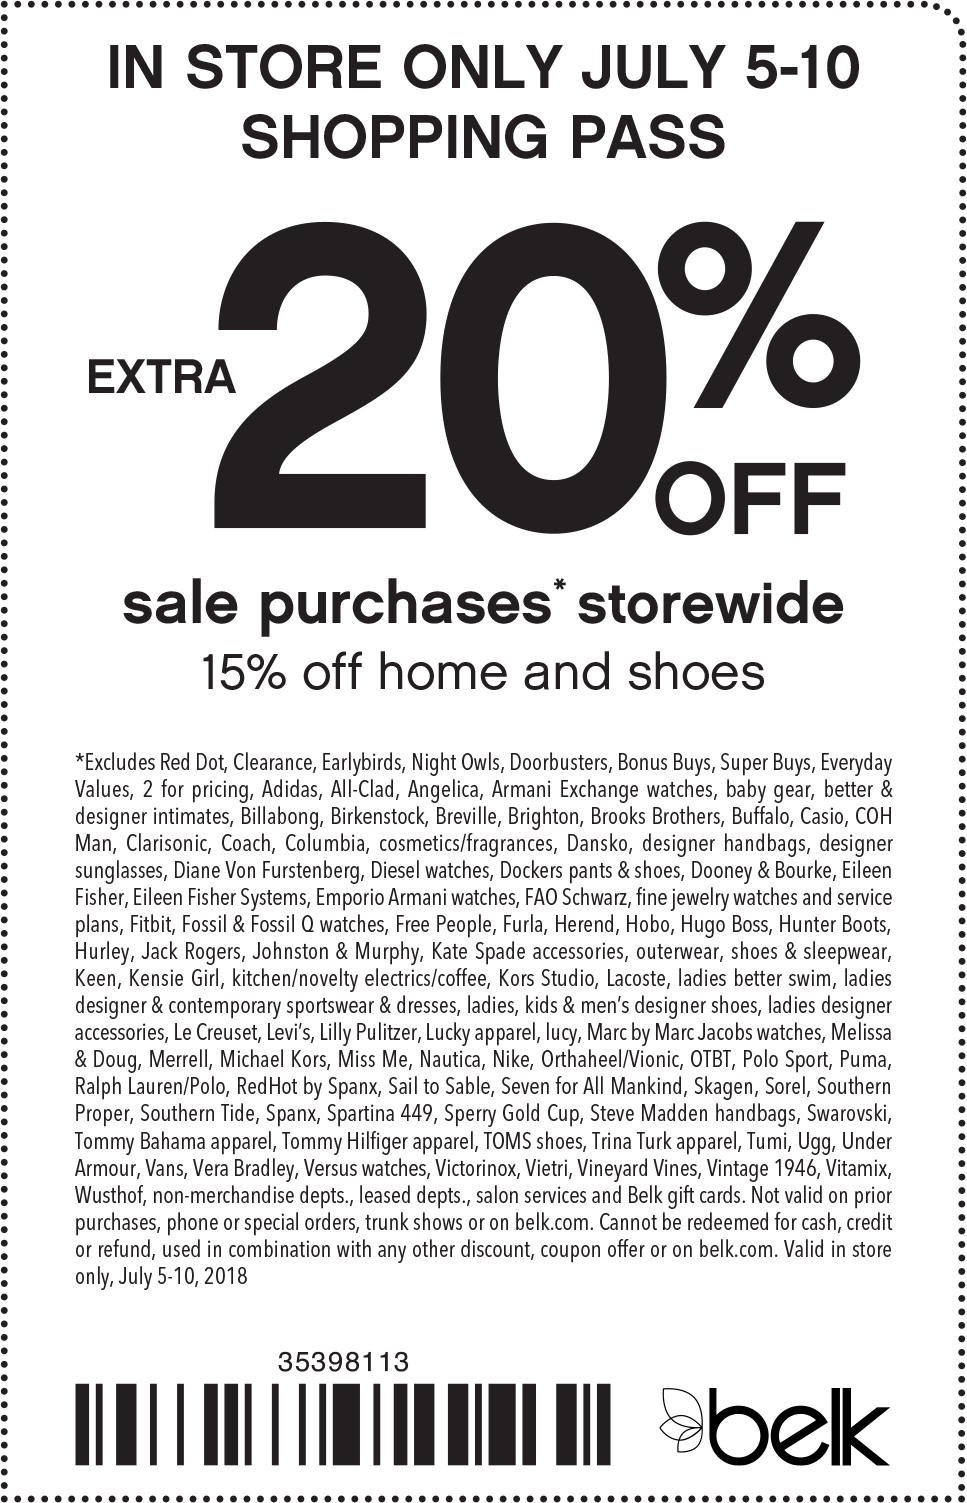 Belk Coupon June 2019 Extra 20% off sale items at Belk